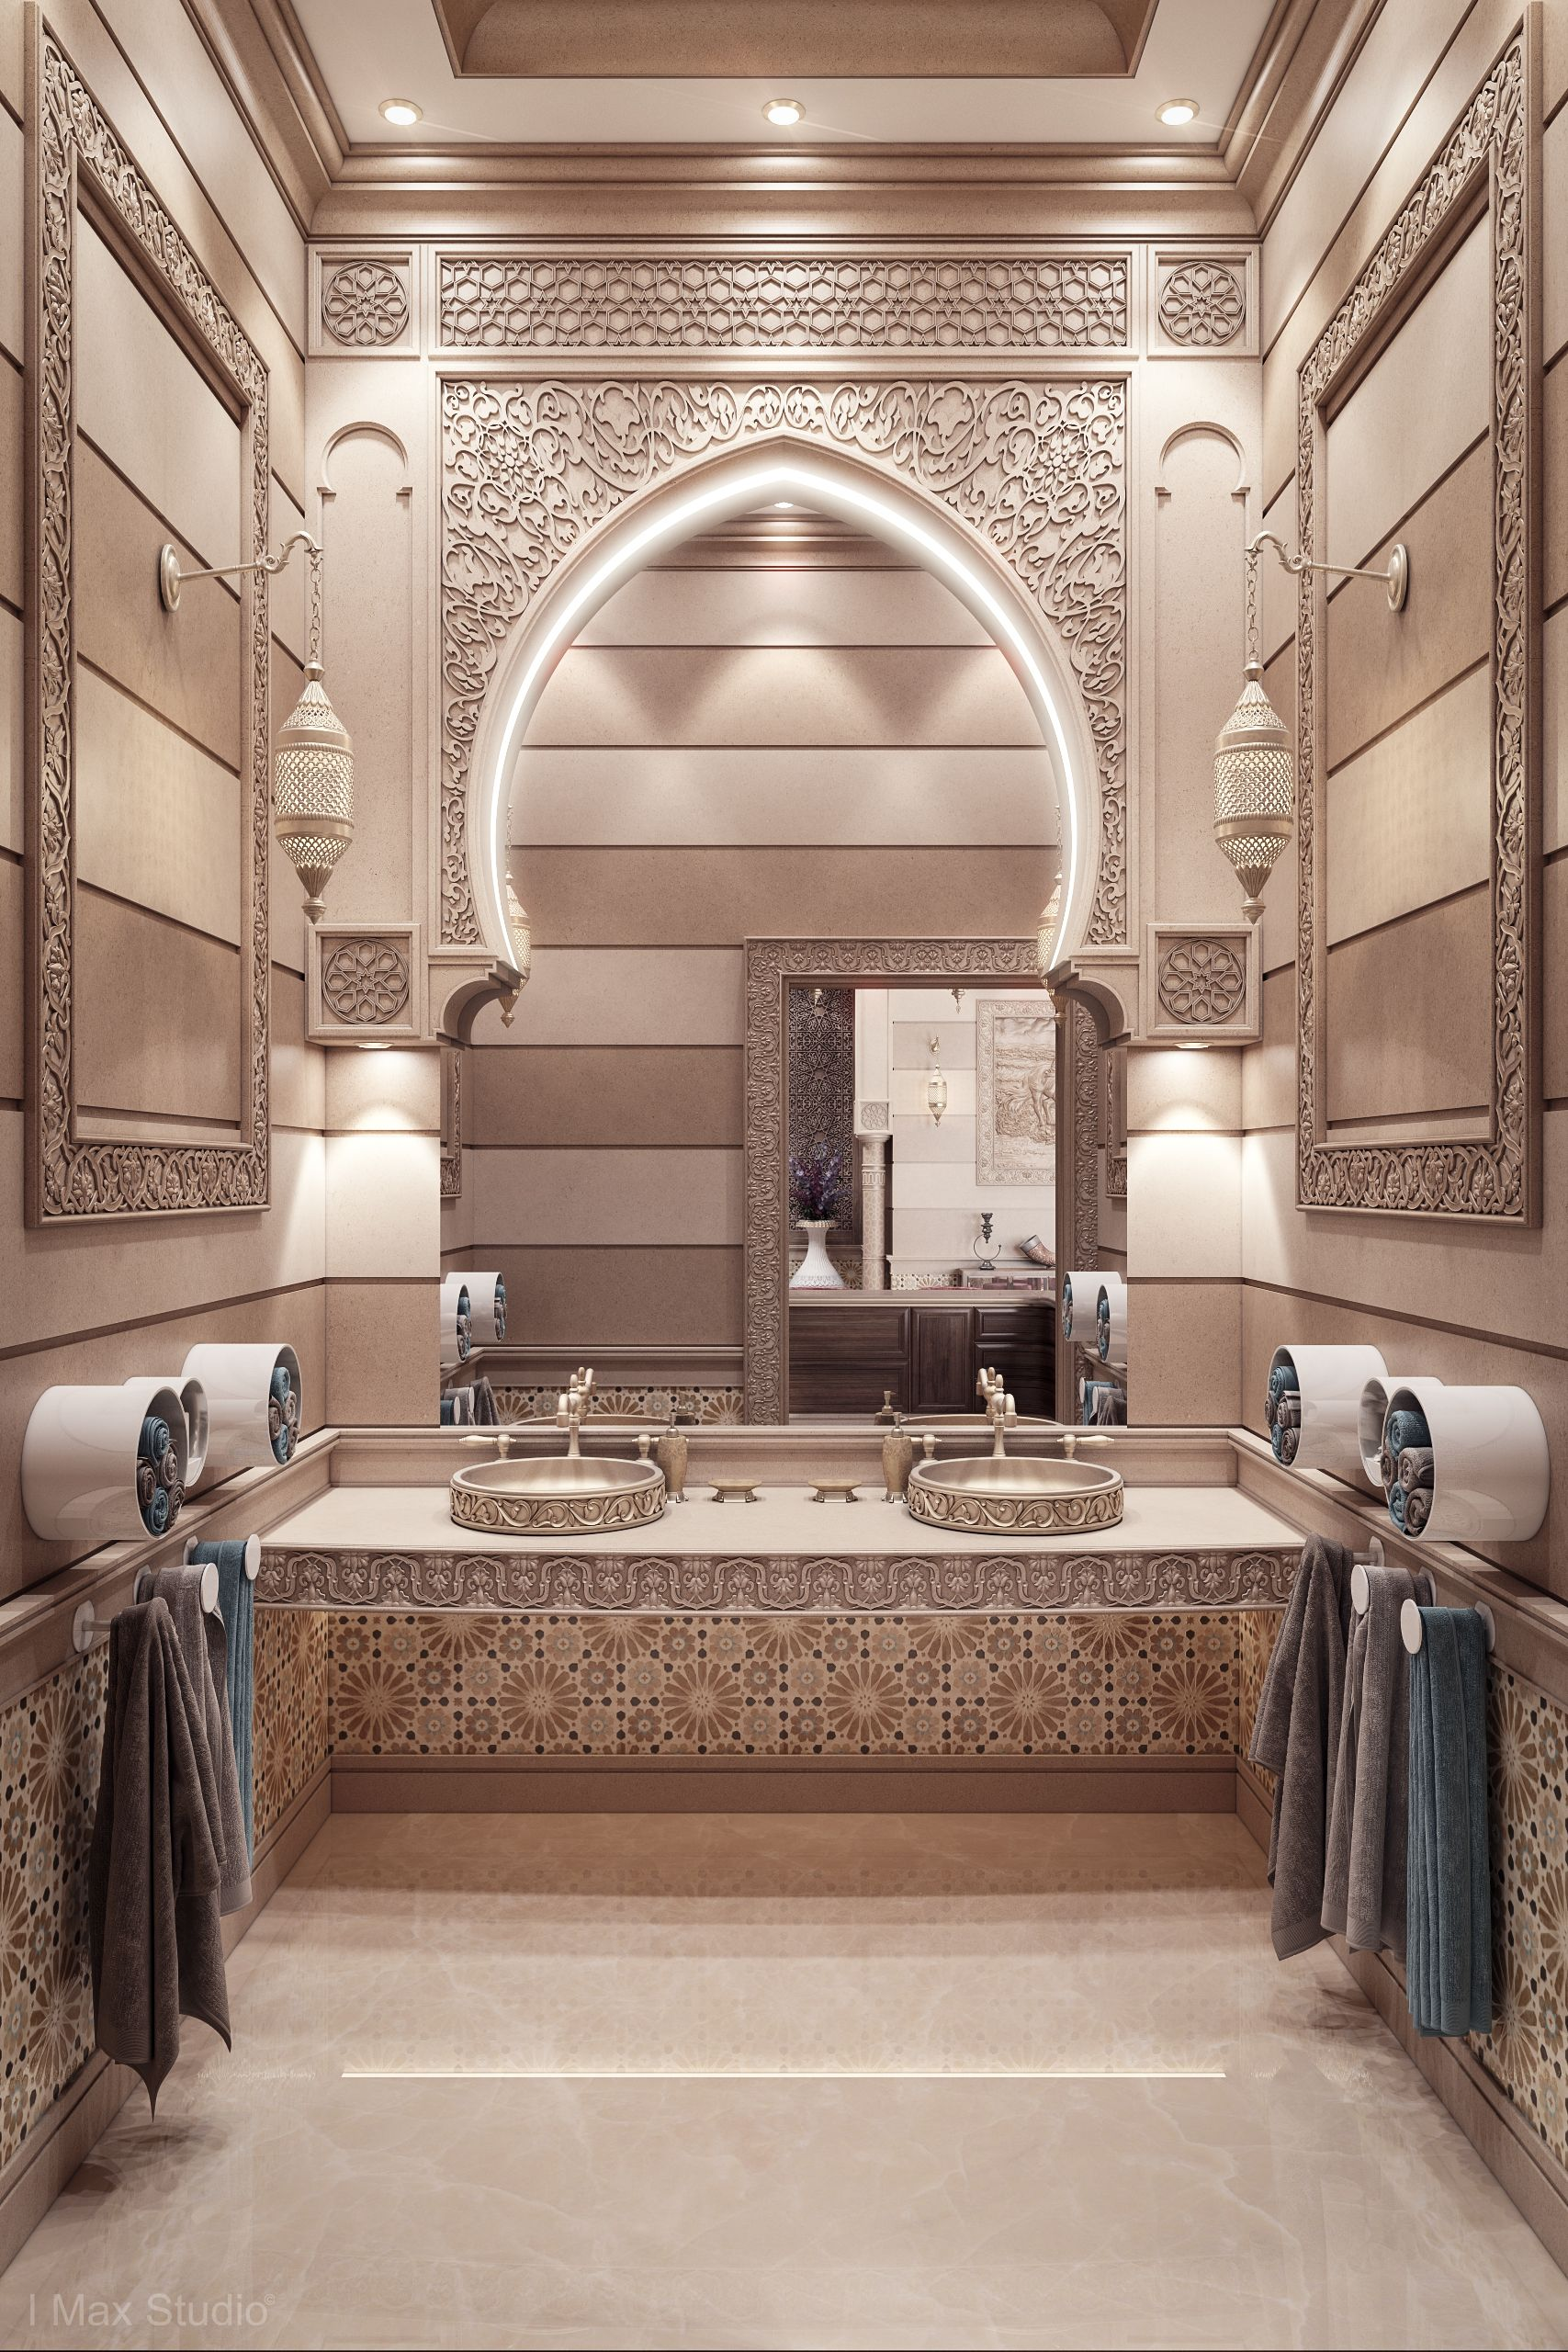 4 bathroom graphic tile patterns with infinite repetitions this bathroom is very elegant